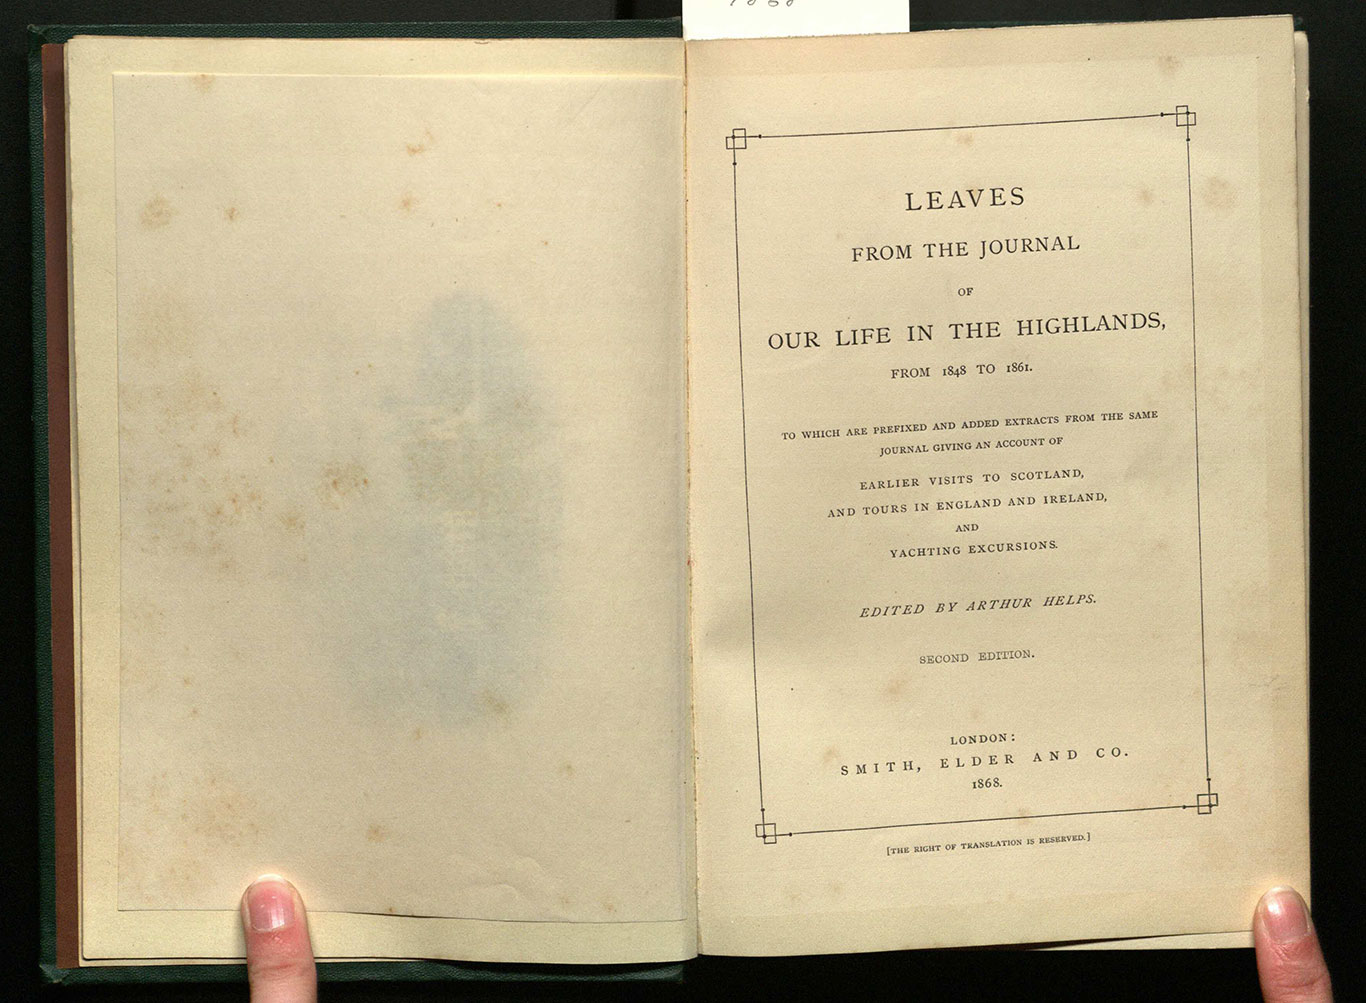 Leaves from the journal of our life in the Highlands, from 1848 to 1861 : to which are prefixed and added extracts from the same journal giving an account of earlier visits to Scotland, and tours in England and Ireland, and yachting excursions